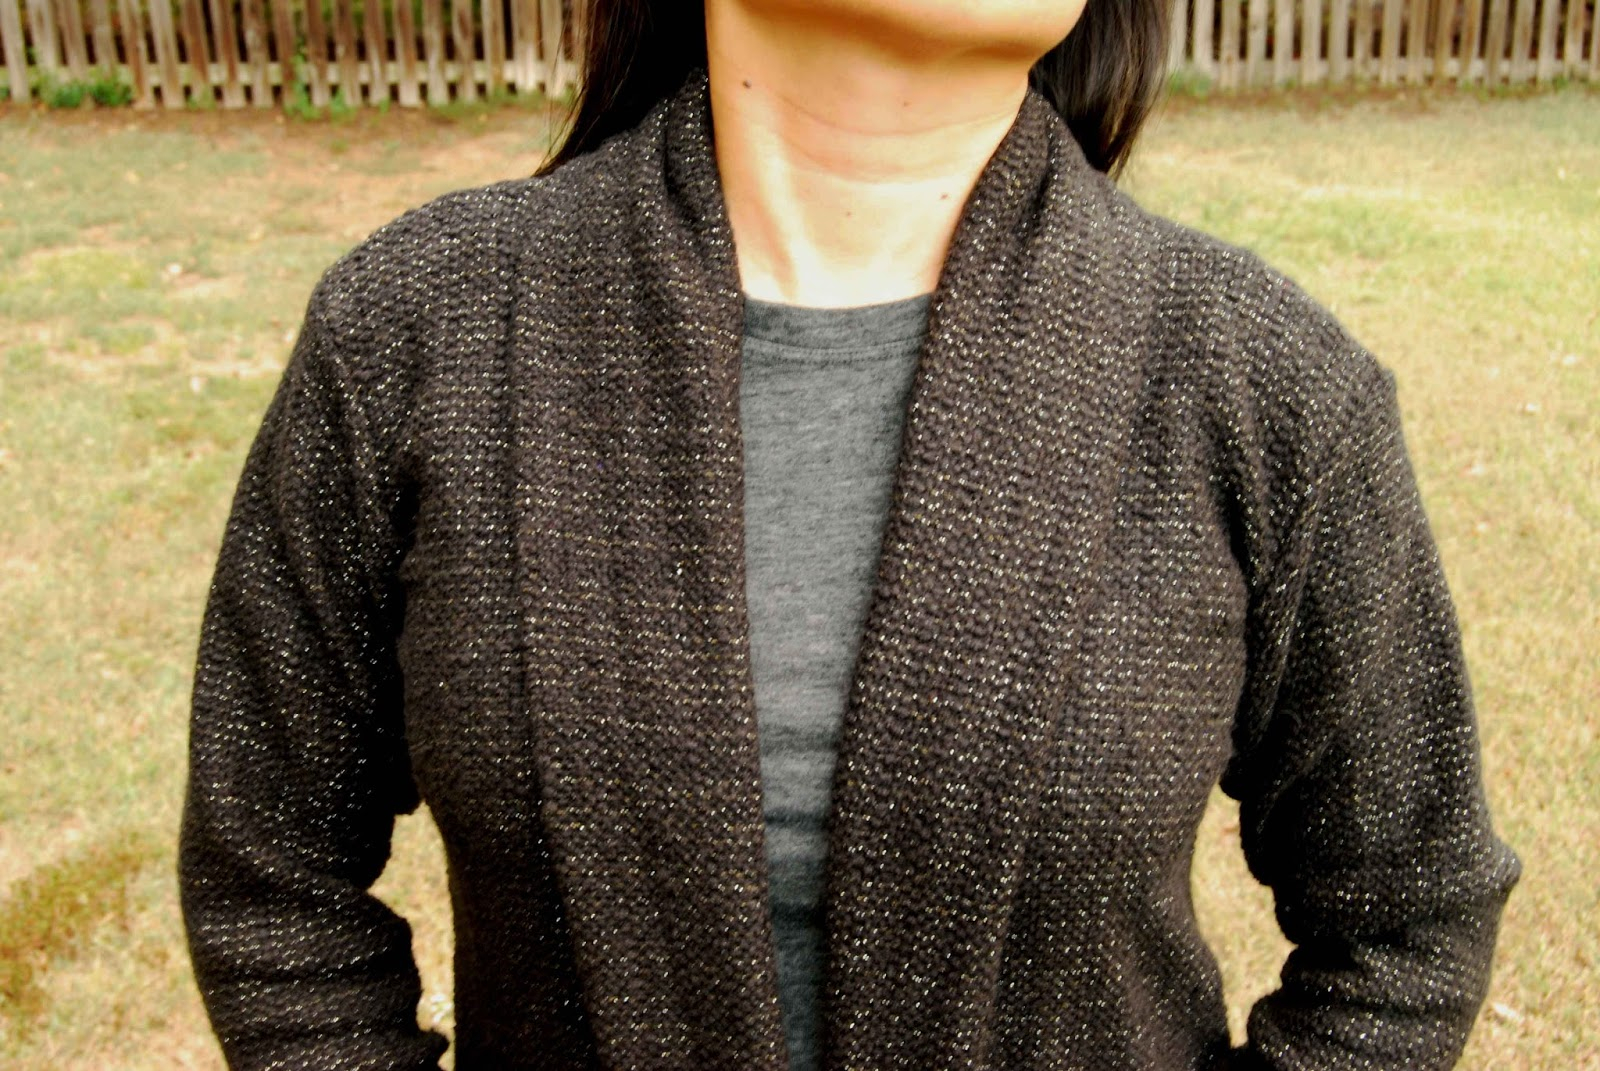 Boyfriend Jumper Knitting Pattern All Things Katy Cardigan Round Up Tour Featuring Mouse House